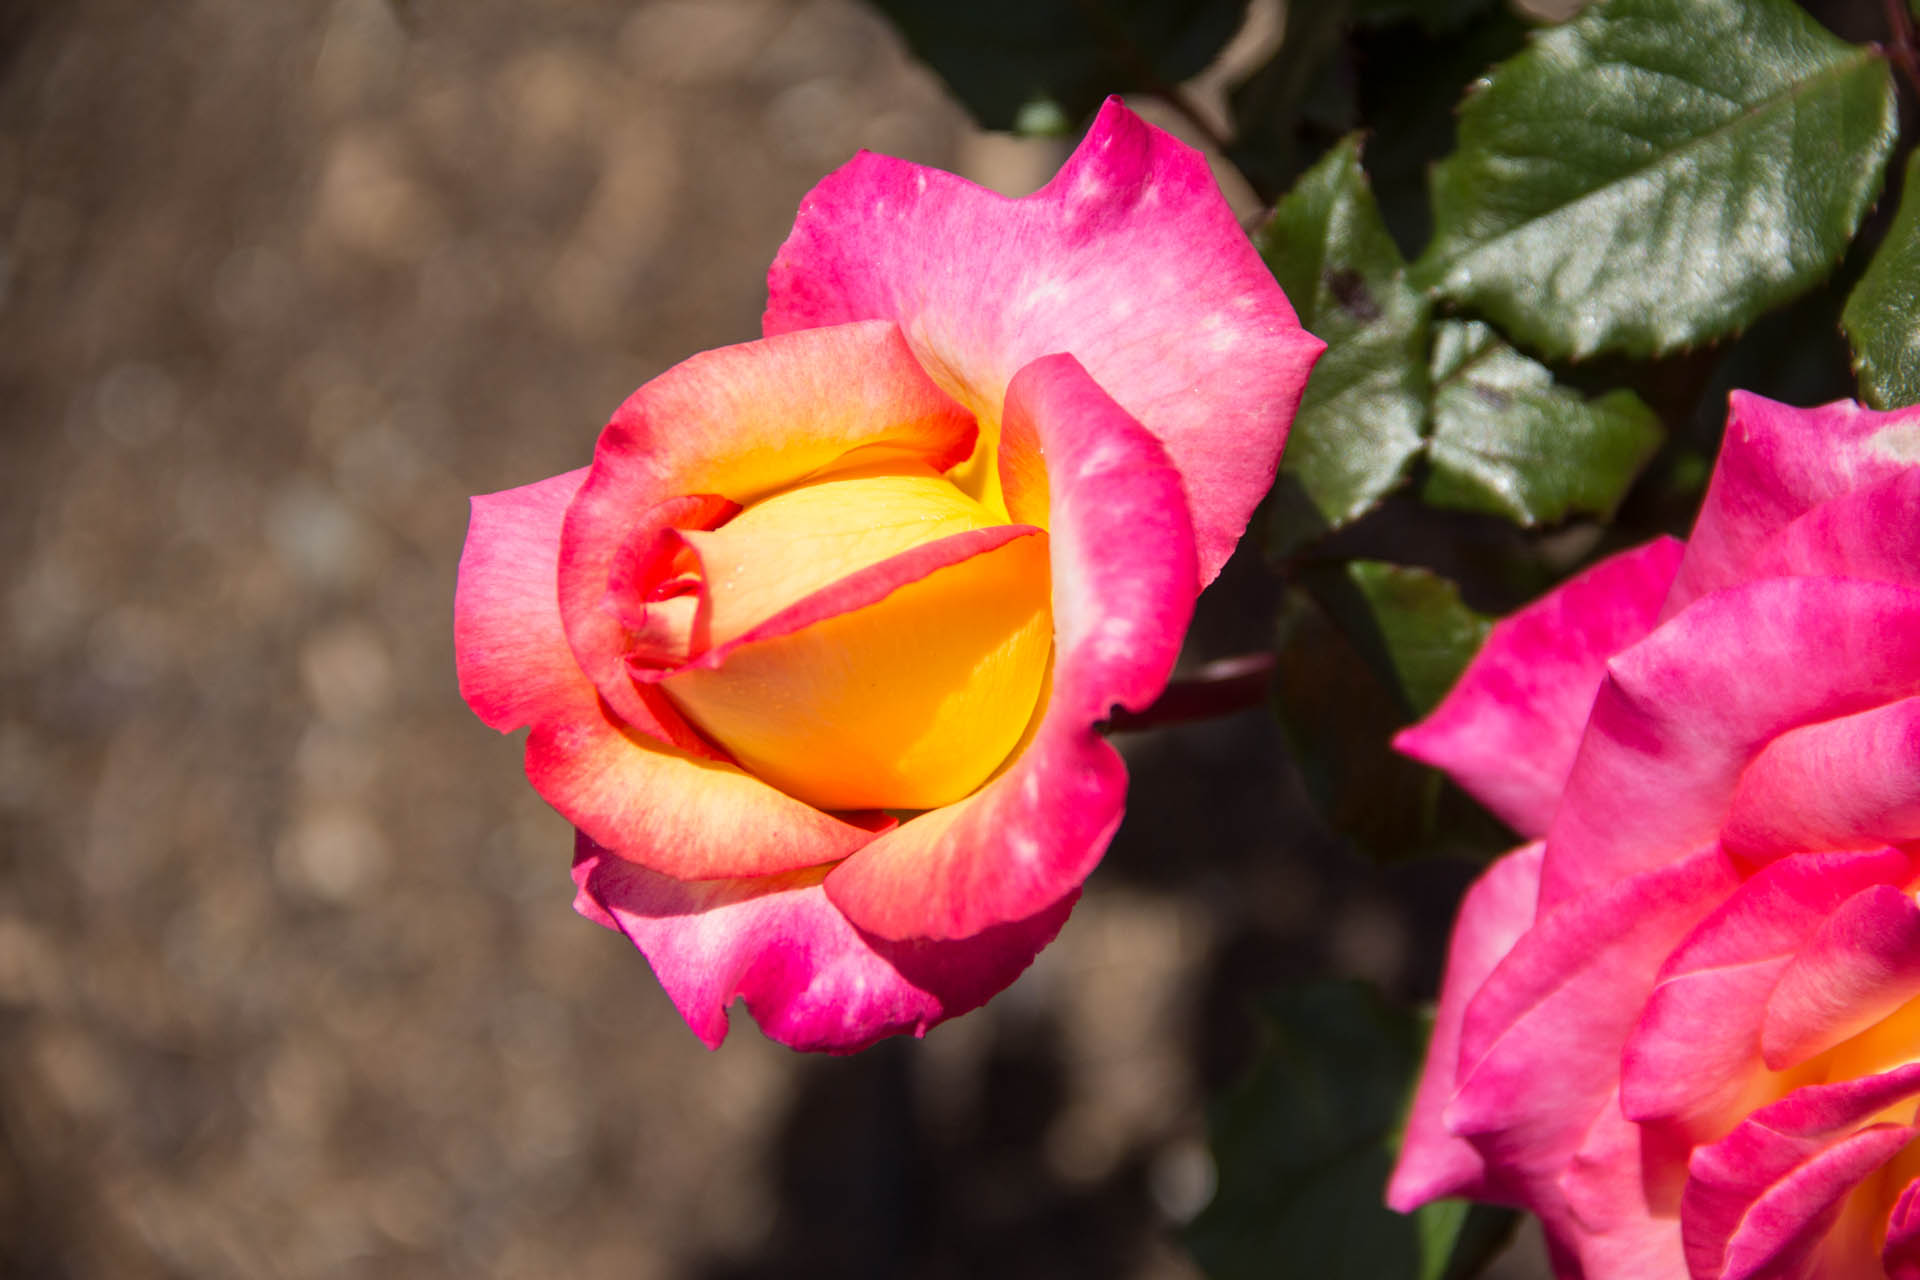 pink and yellow rose bud at parnell rose garden in new zealand